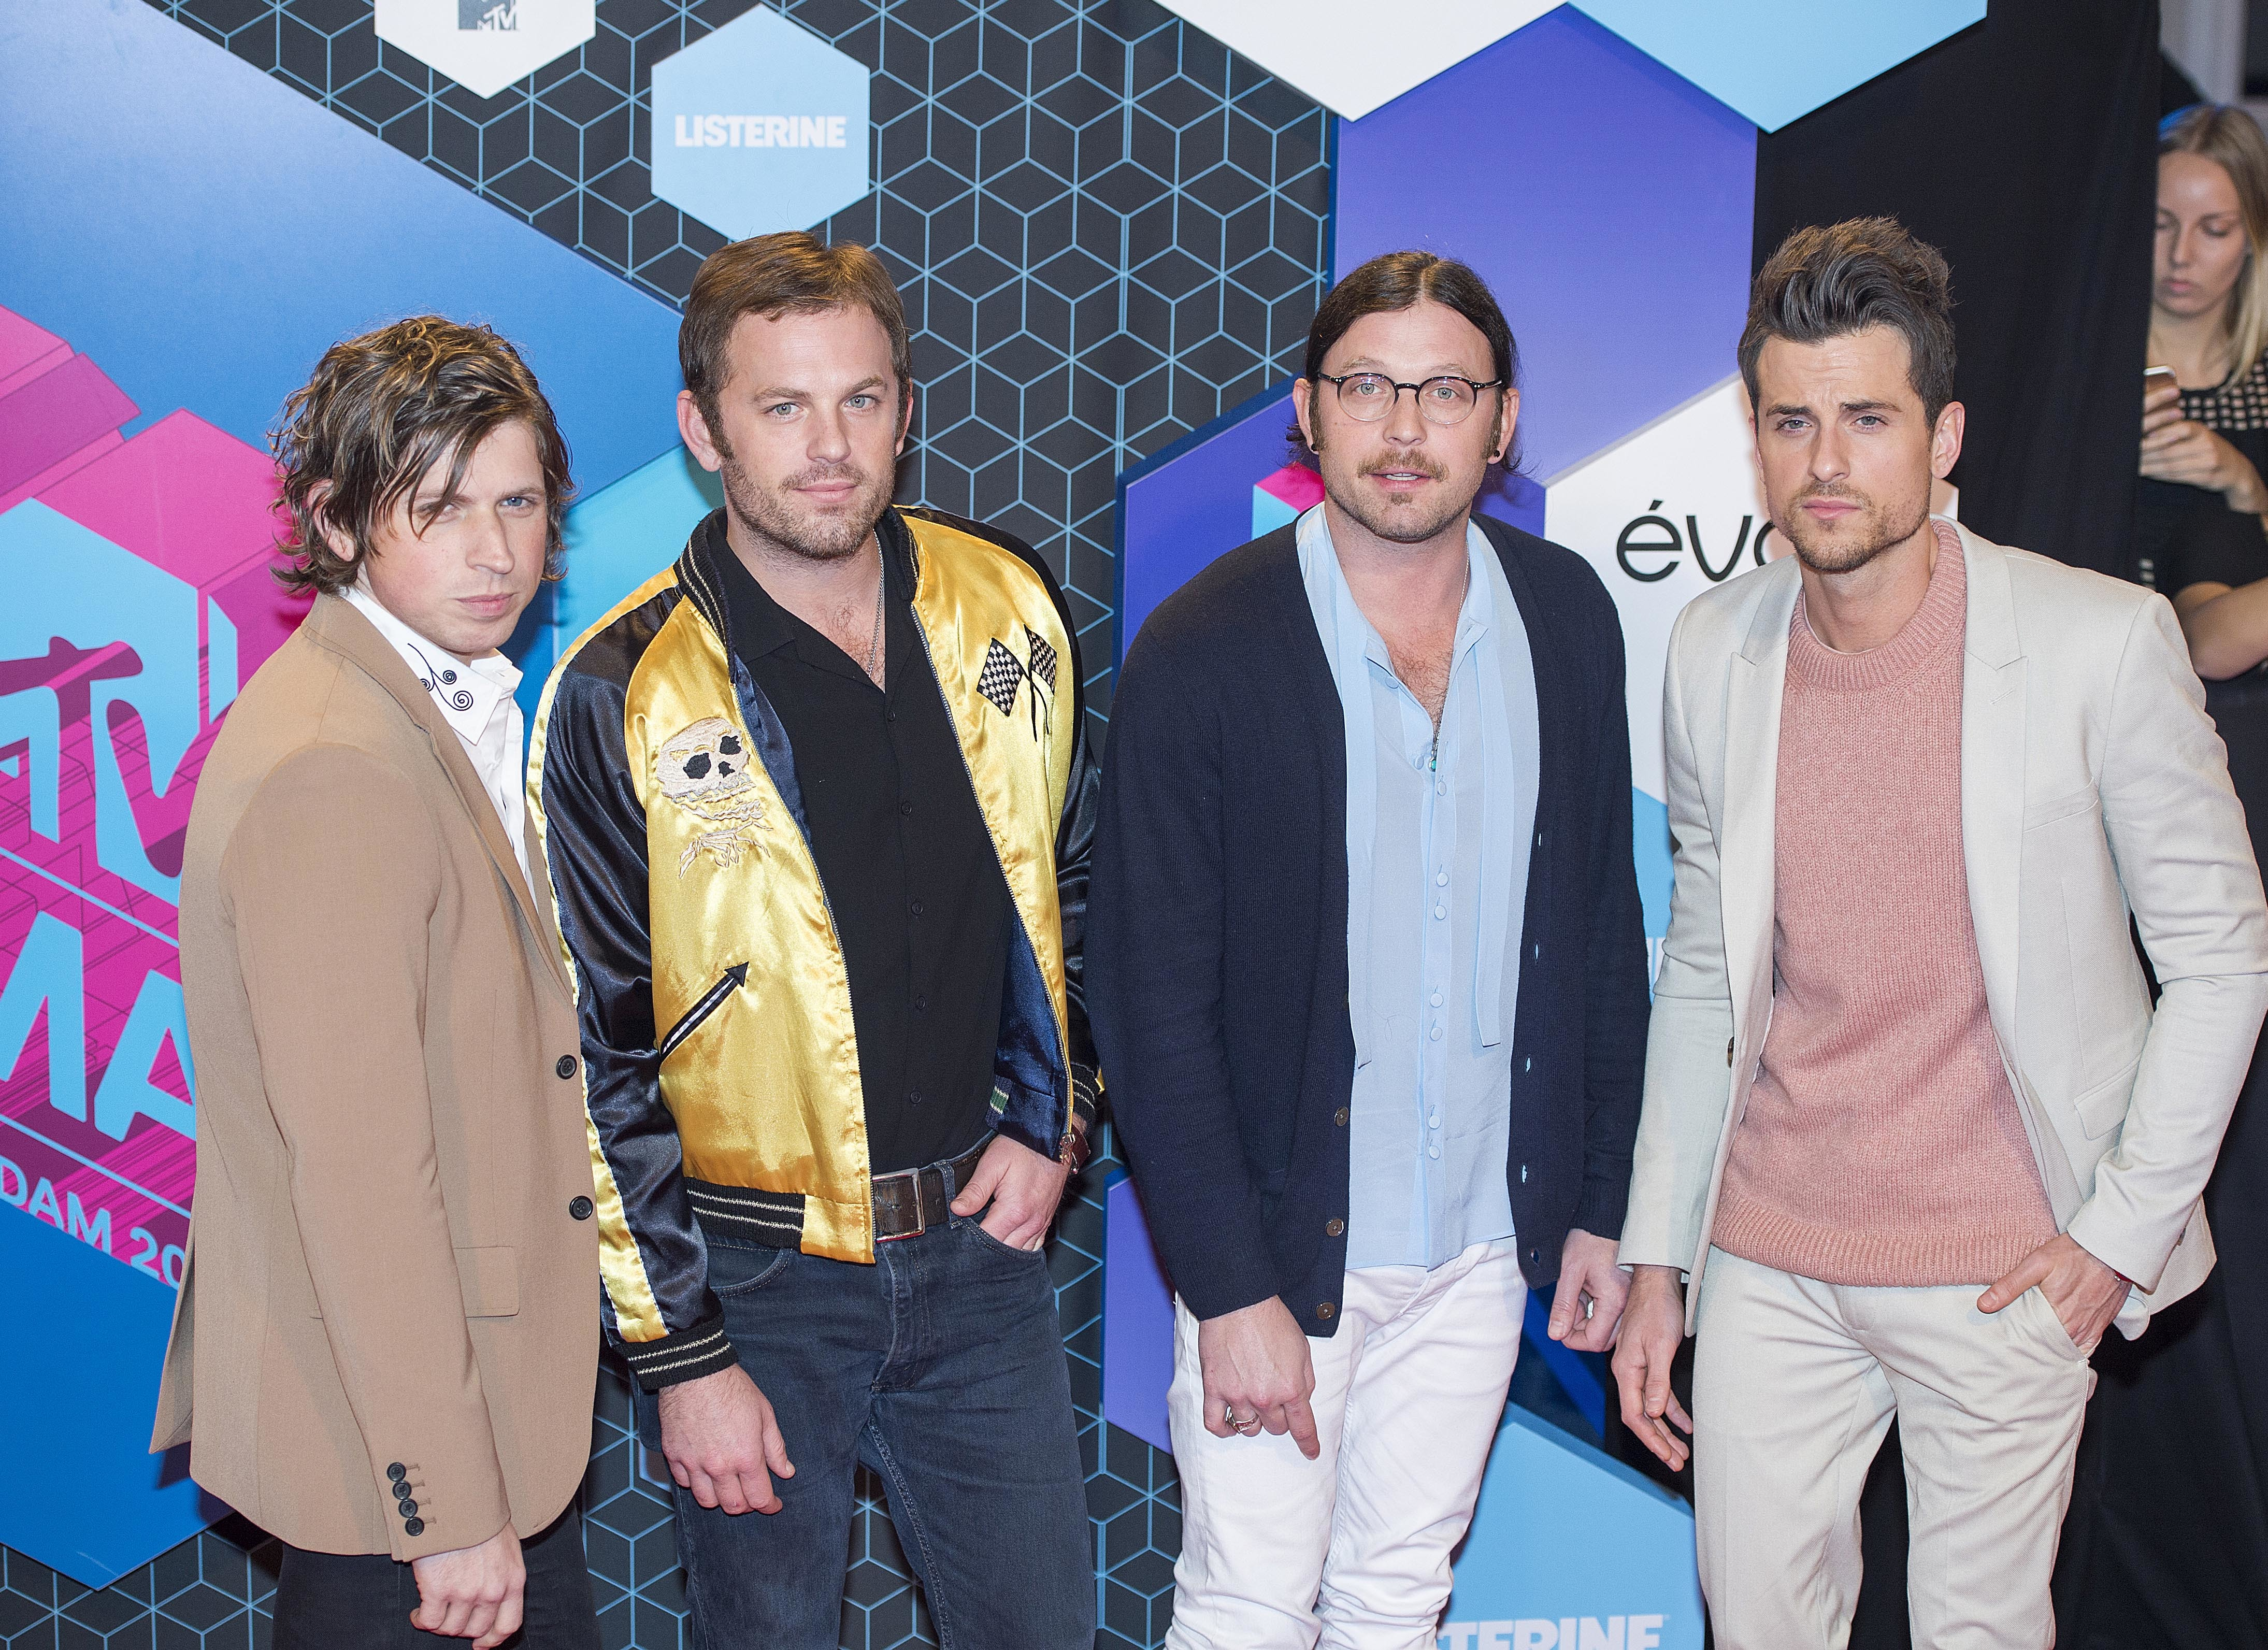 The 2016 MTV Europe Music Awards (EMAs) held at the Ahoy Rotterdam, Netherlands - Red Carpet Arrivals  Featuring: Kings of Leon, Caleb Followill, Jared Followill, Matthew Followill, Nathan Followill Where: Rotterdam, Netherlands When: 06 Nov 2016 Credit: Rene Rossignaud/WENN.com